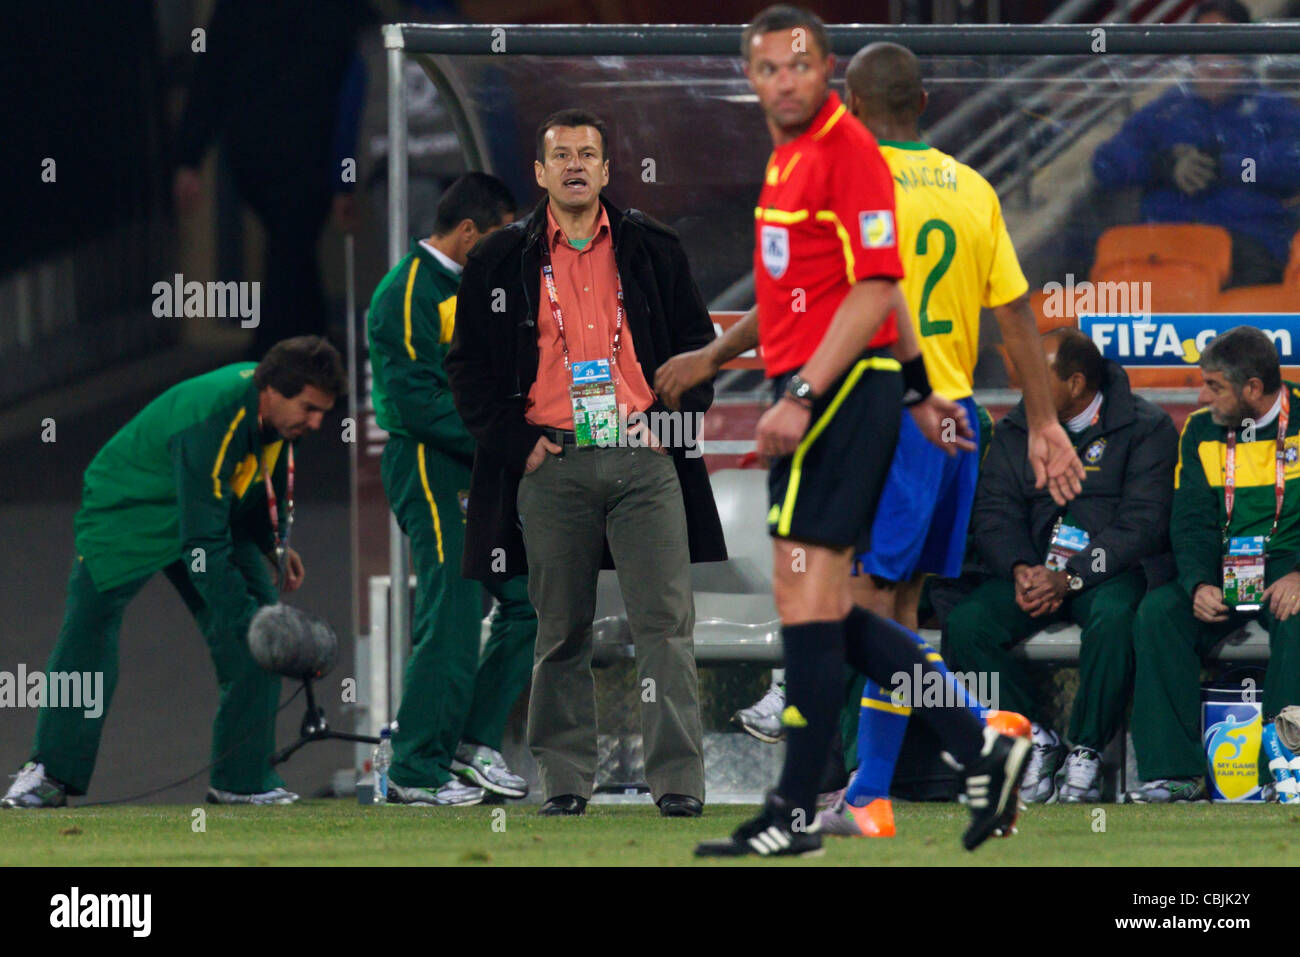 Brazil head coach Dunga directs his team during a 2010 FIFA World Cup match against Côte d'Ivoire at Soccer - Stock Image